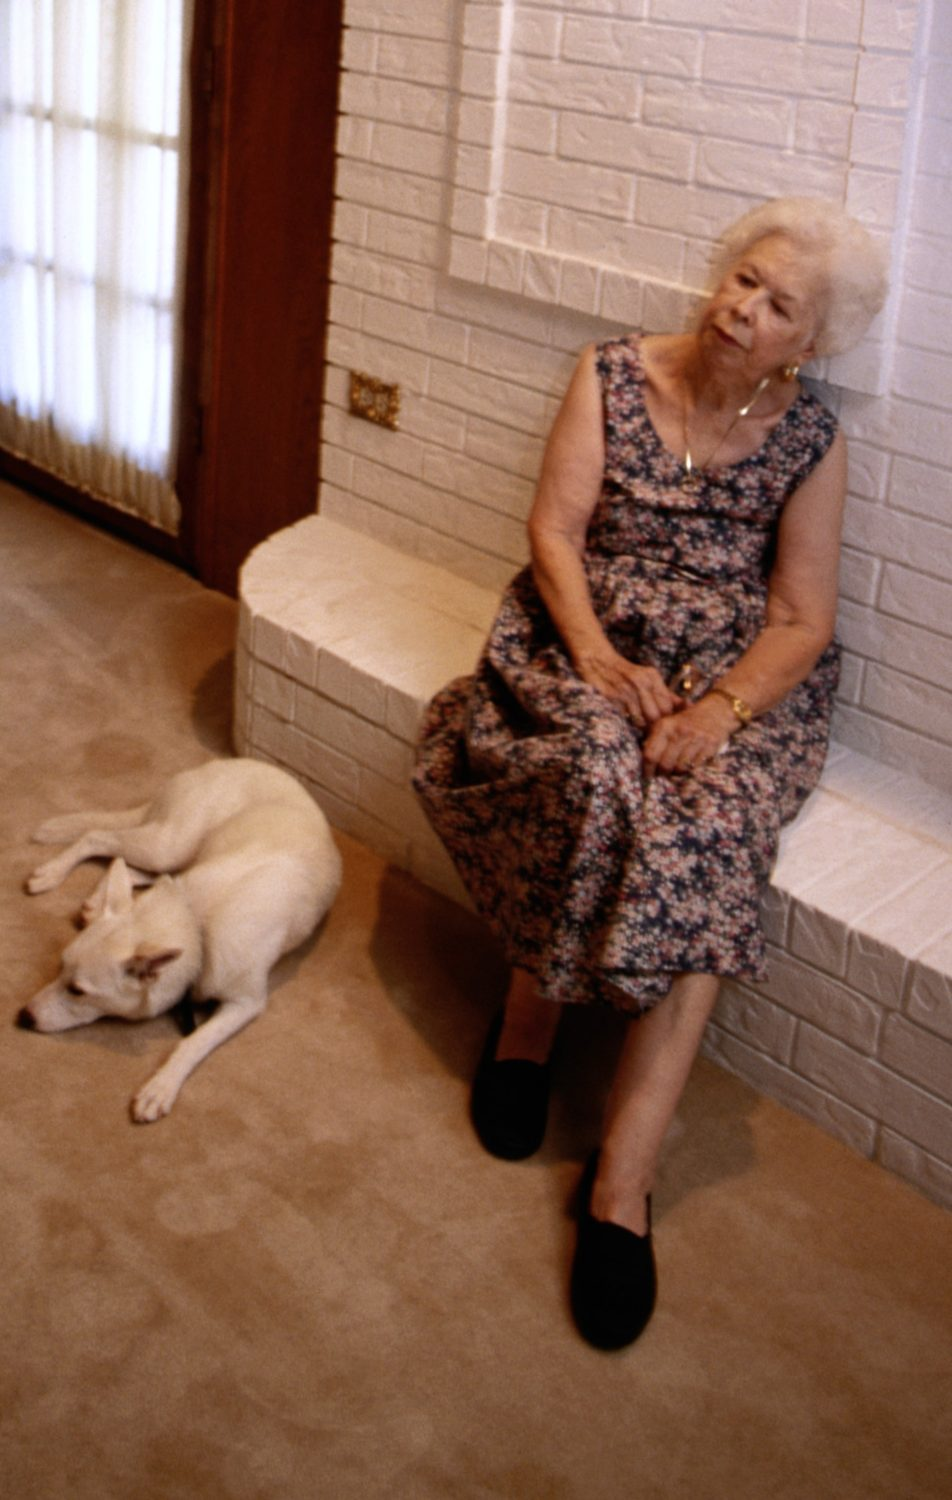 Lonely elderly woman with dog, older adults